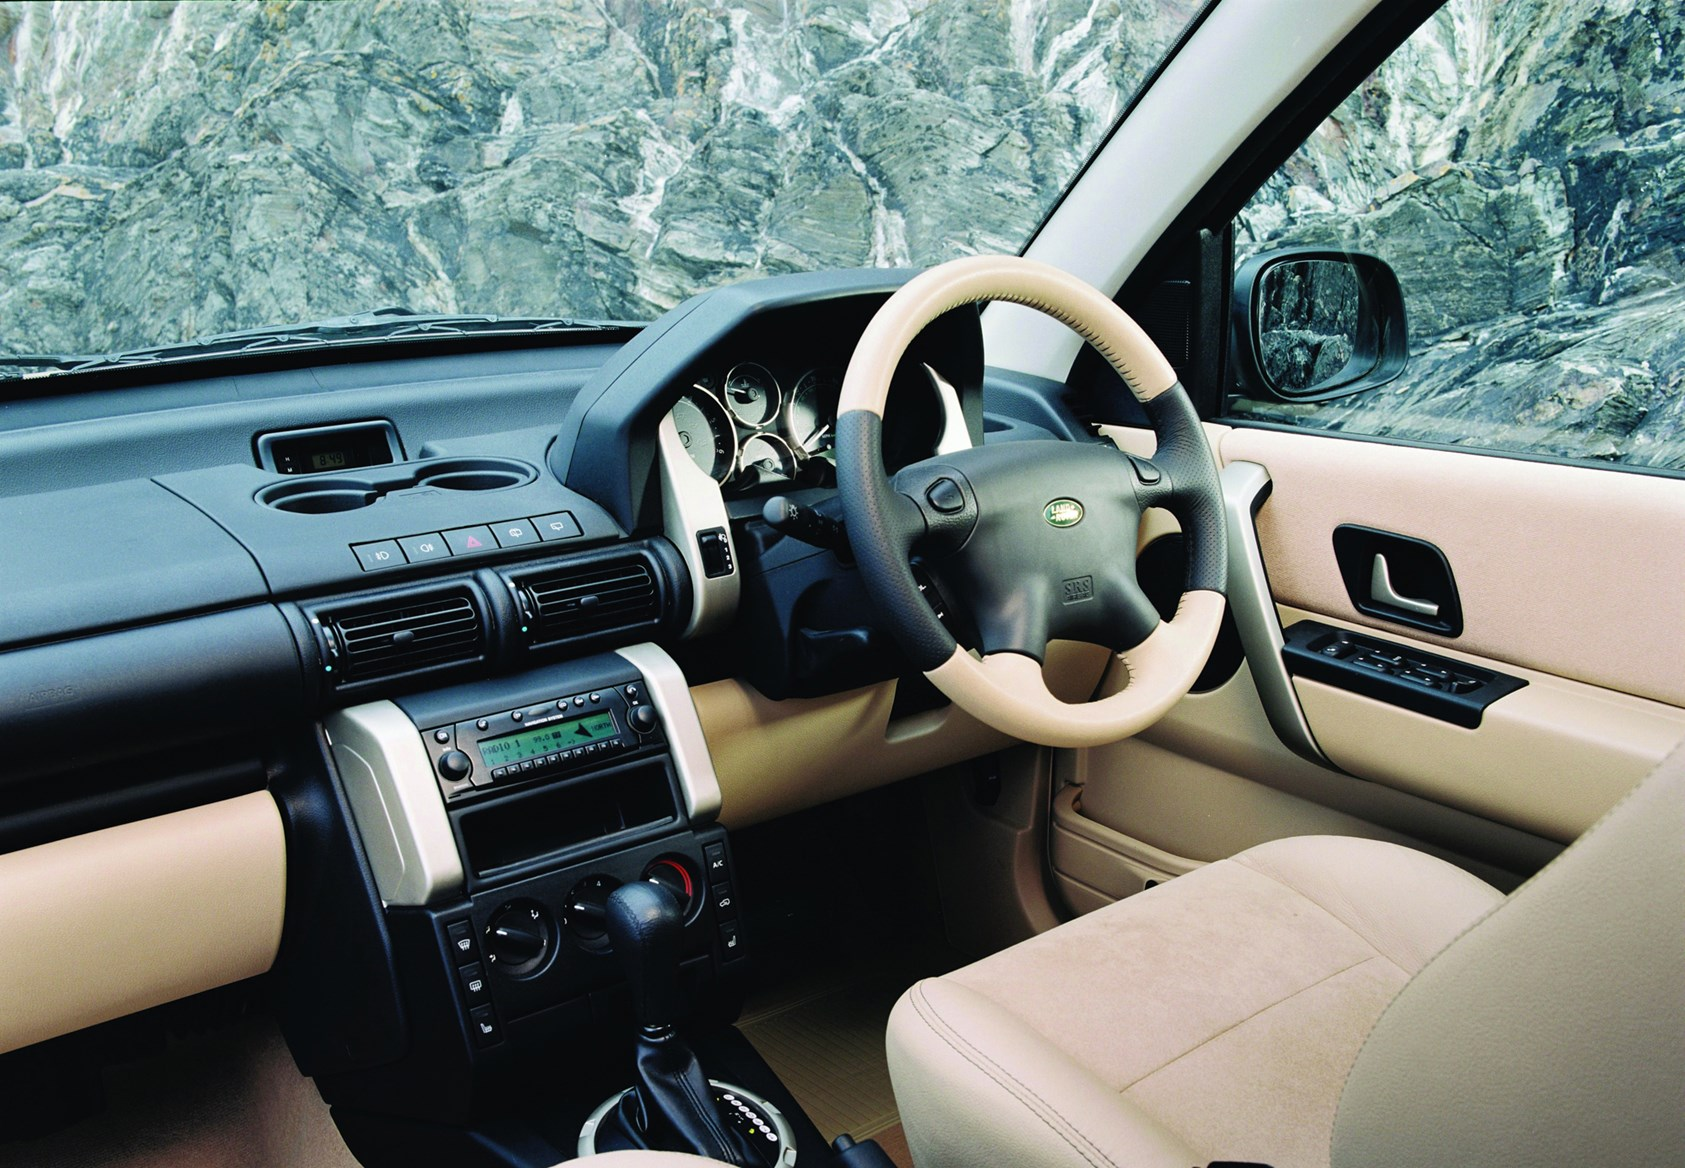 https://parkers-images.bauersecure.com/pagefiles/197131/main-interior/freelander_int01.jpg